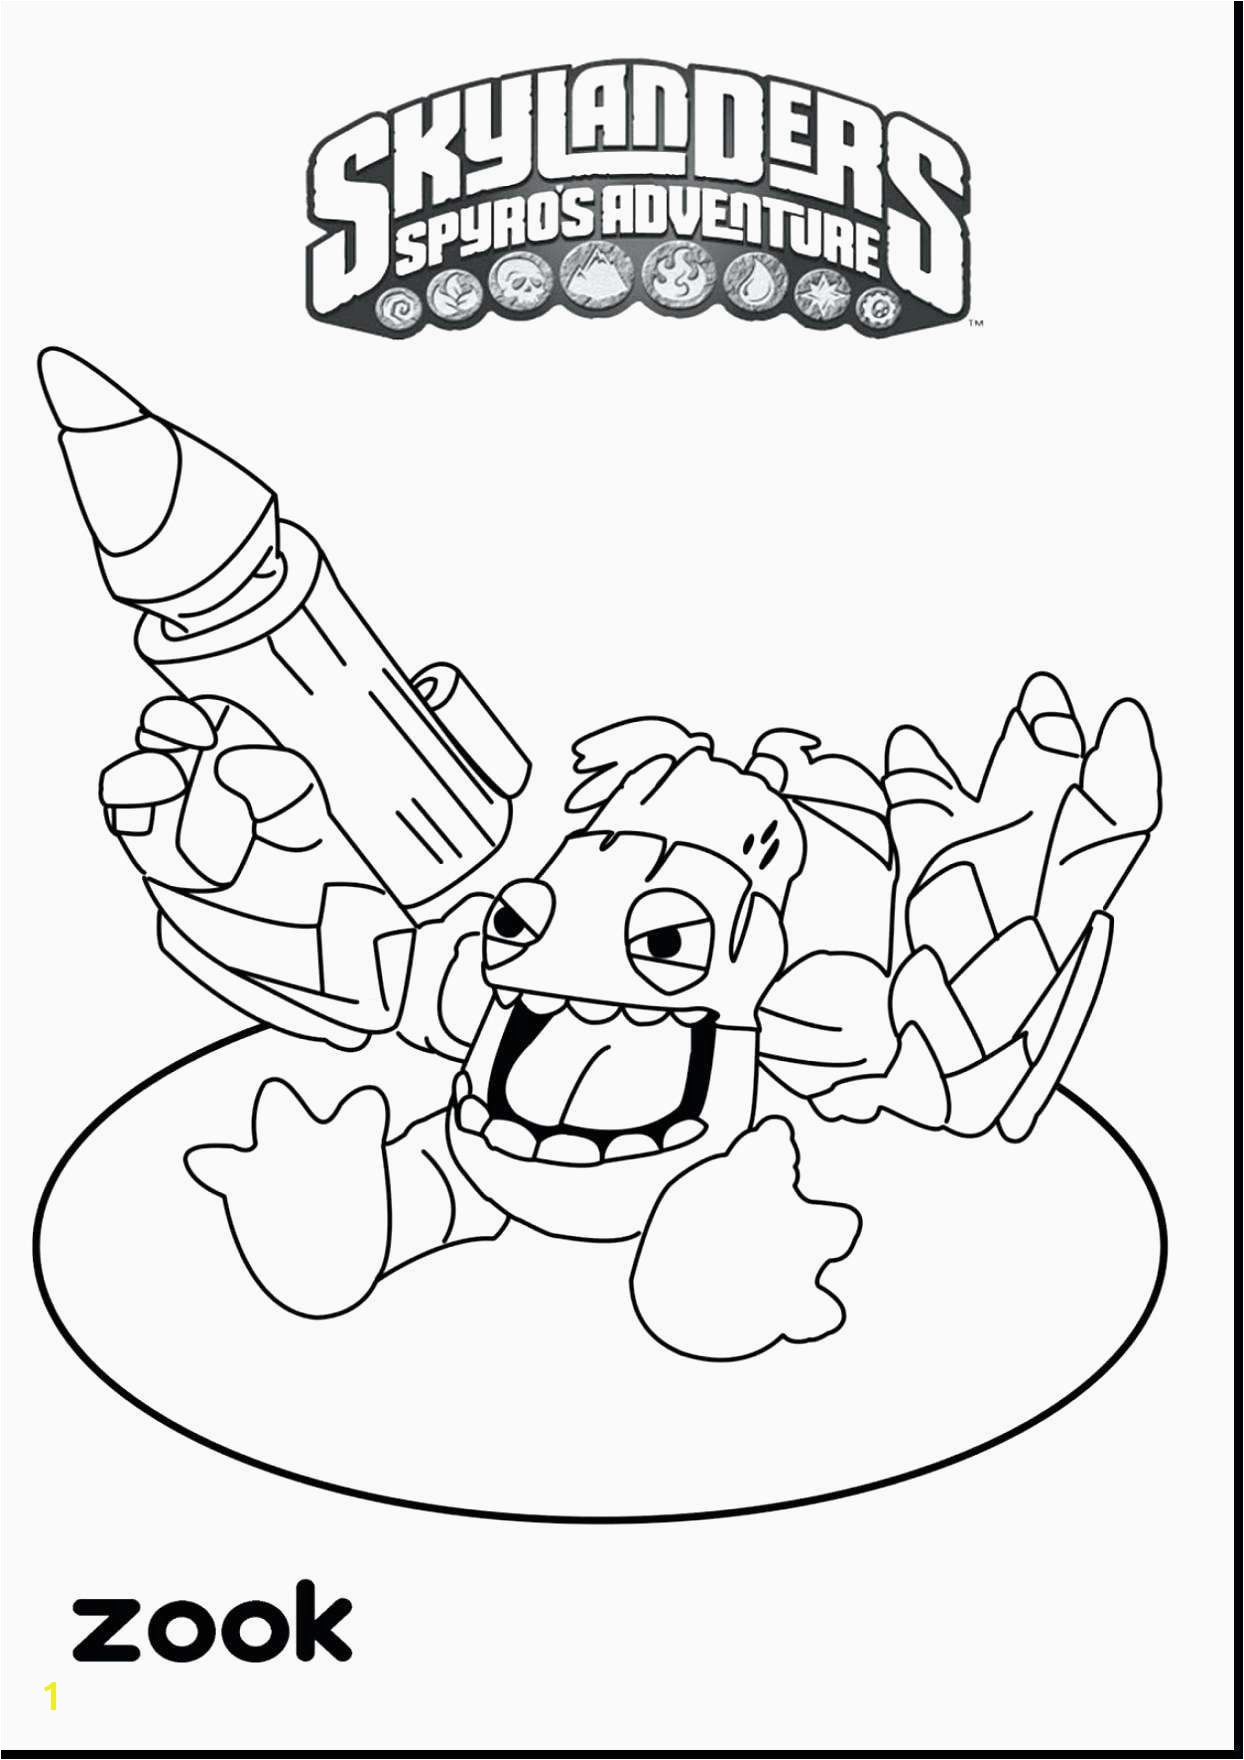 Print Out Coloring Pages 28 Coloring Pages for Christmas Printable